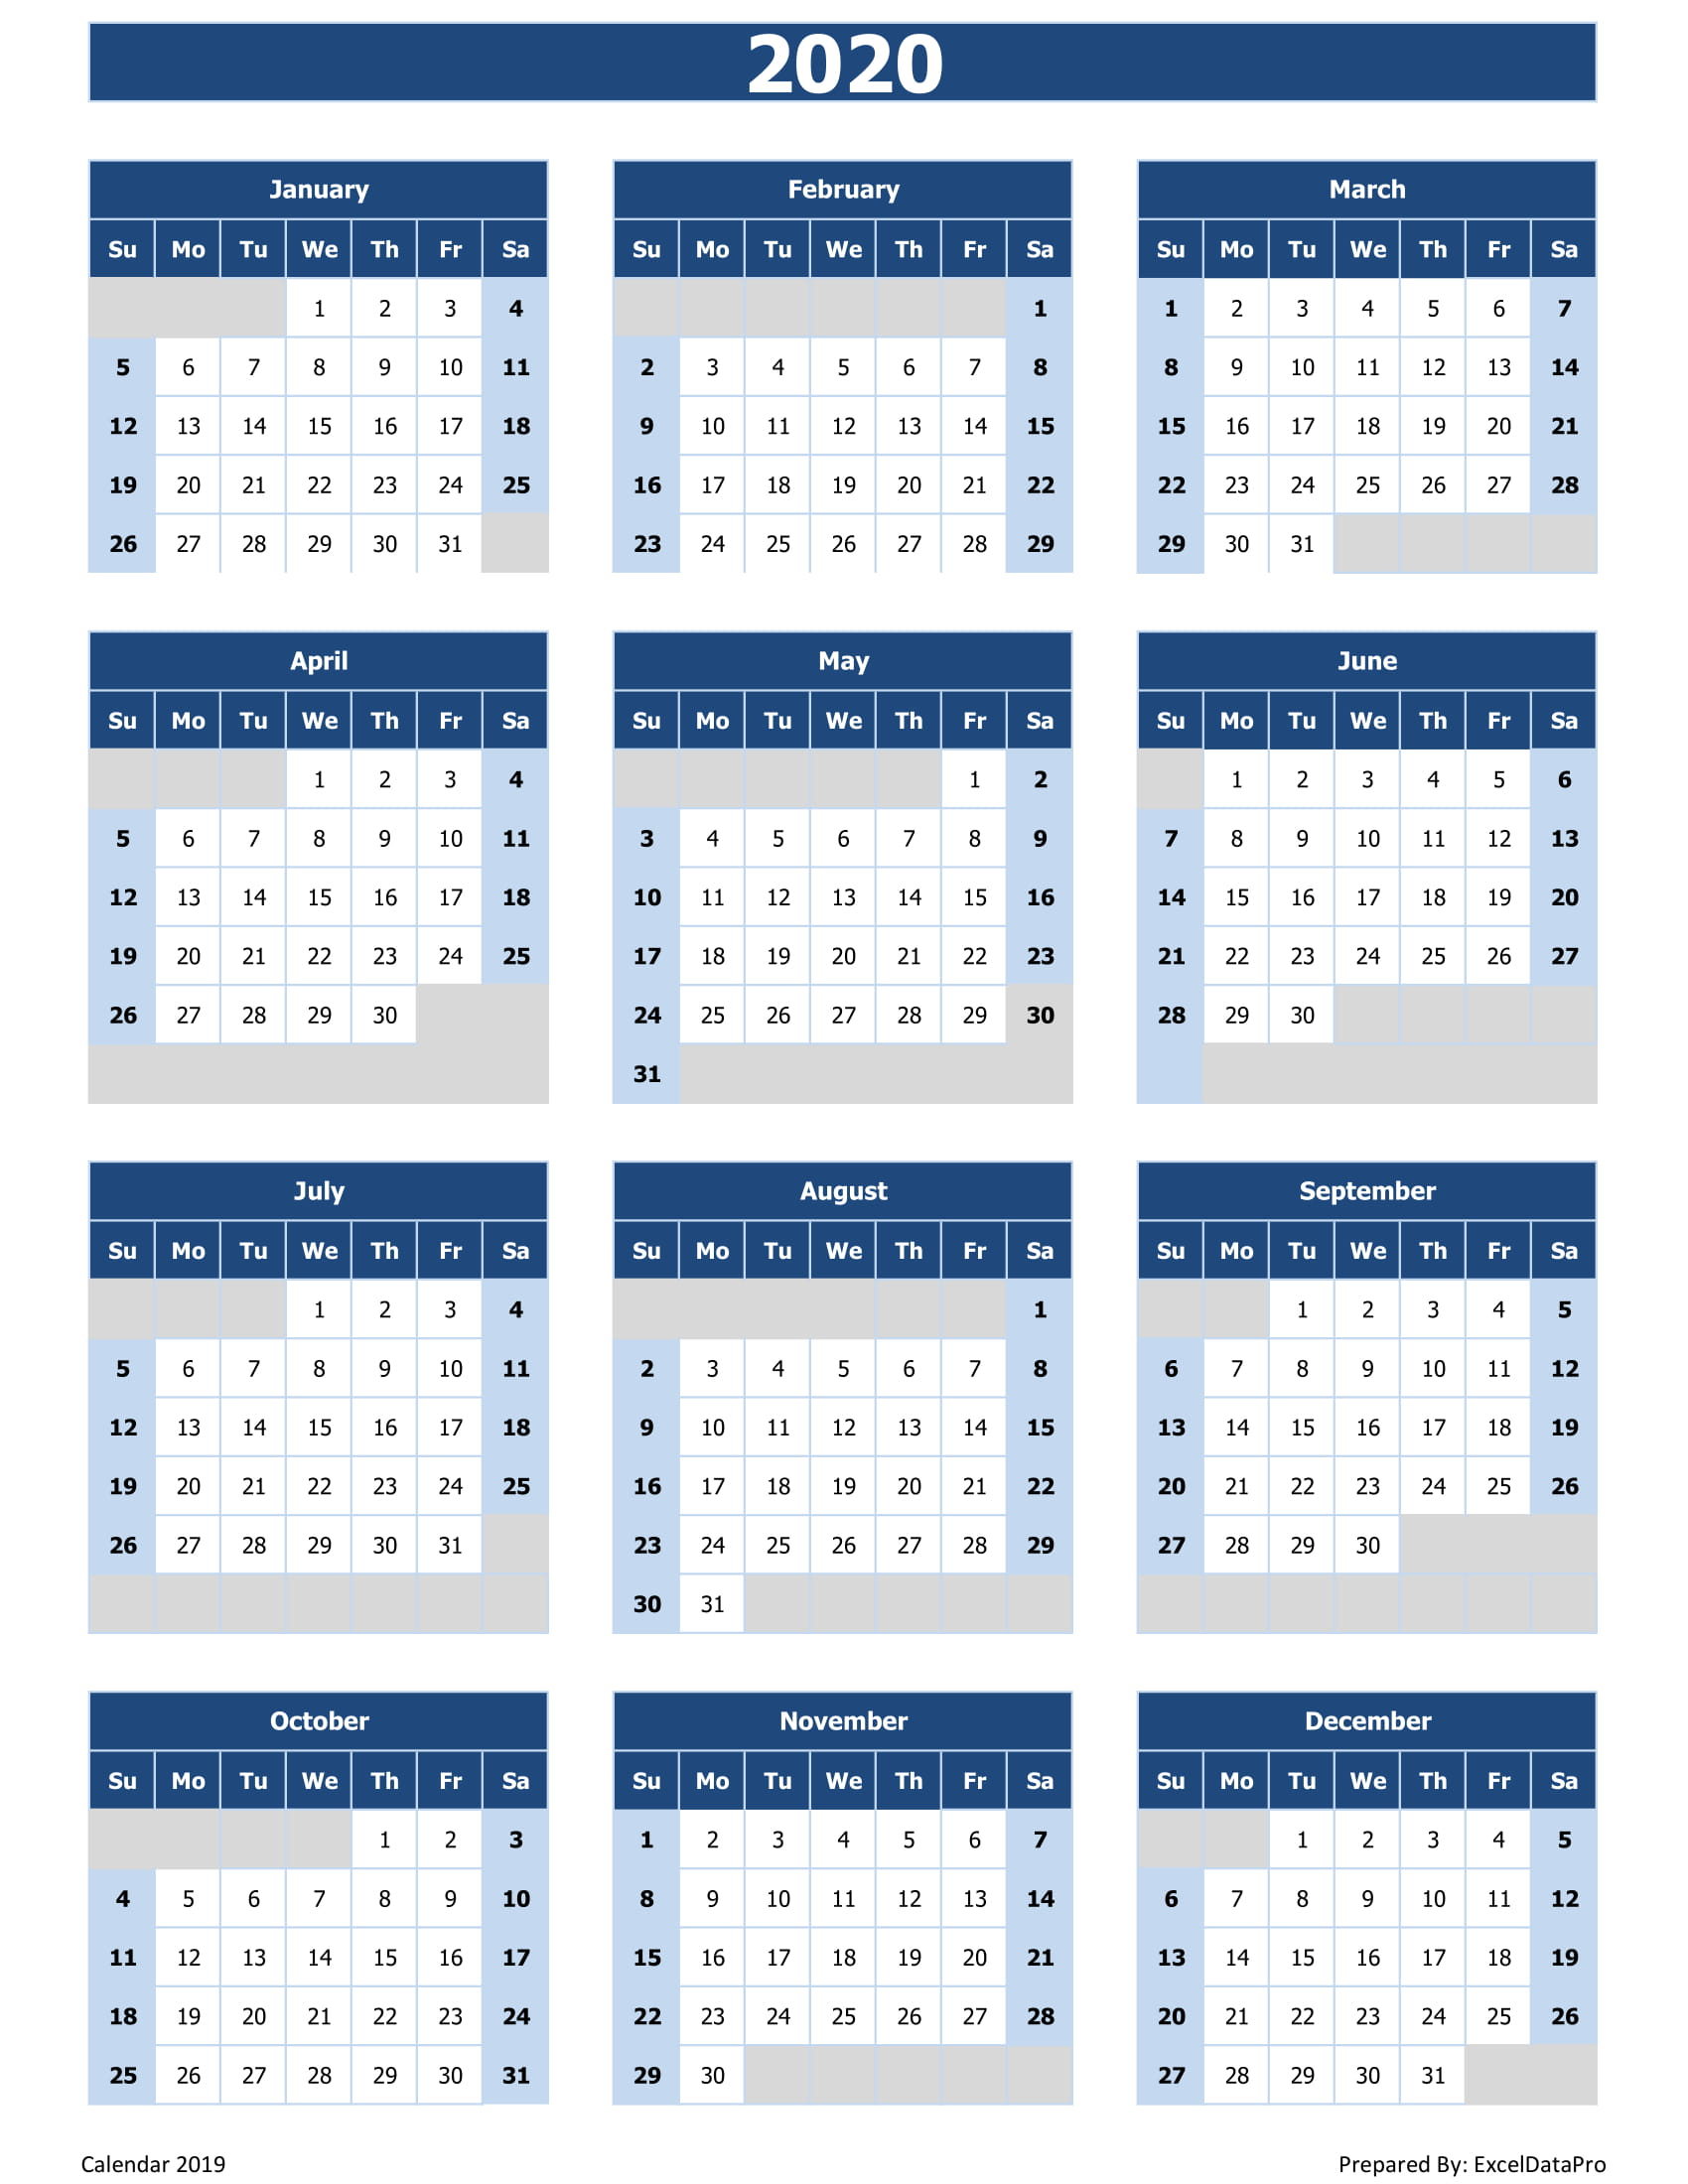 Excel 2020 Calendar  Yatay.horizonconsulting.co intended for 2020 Excel Calendar Free